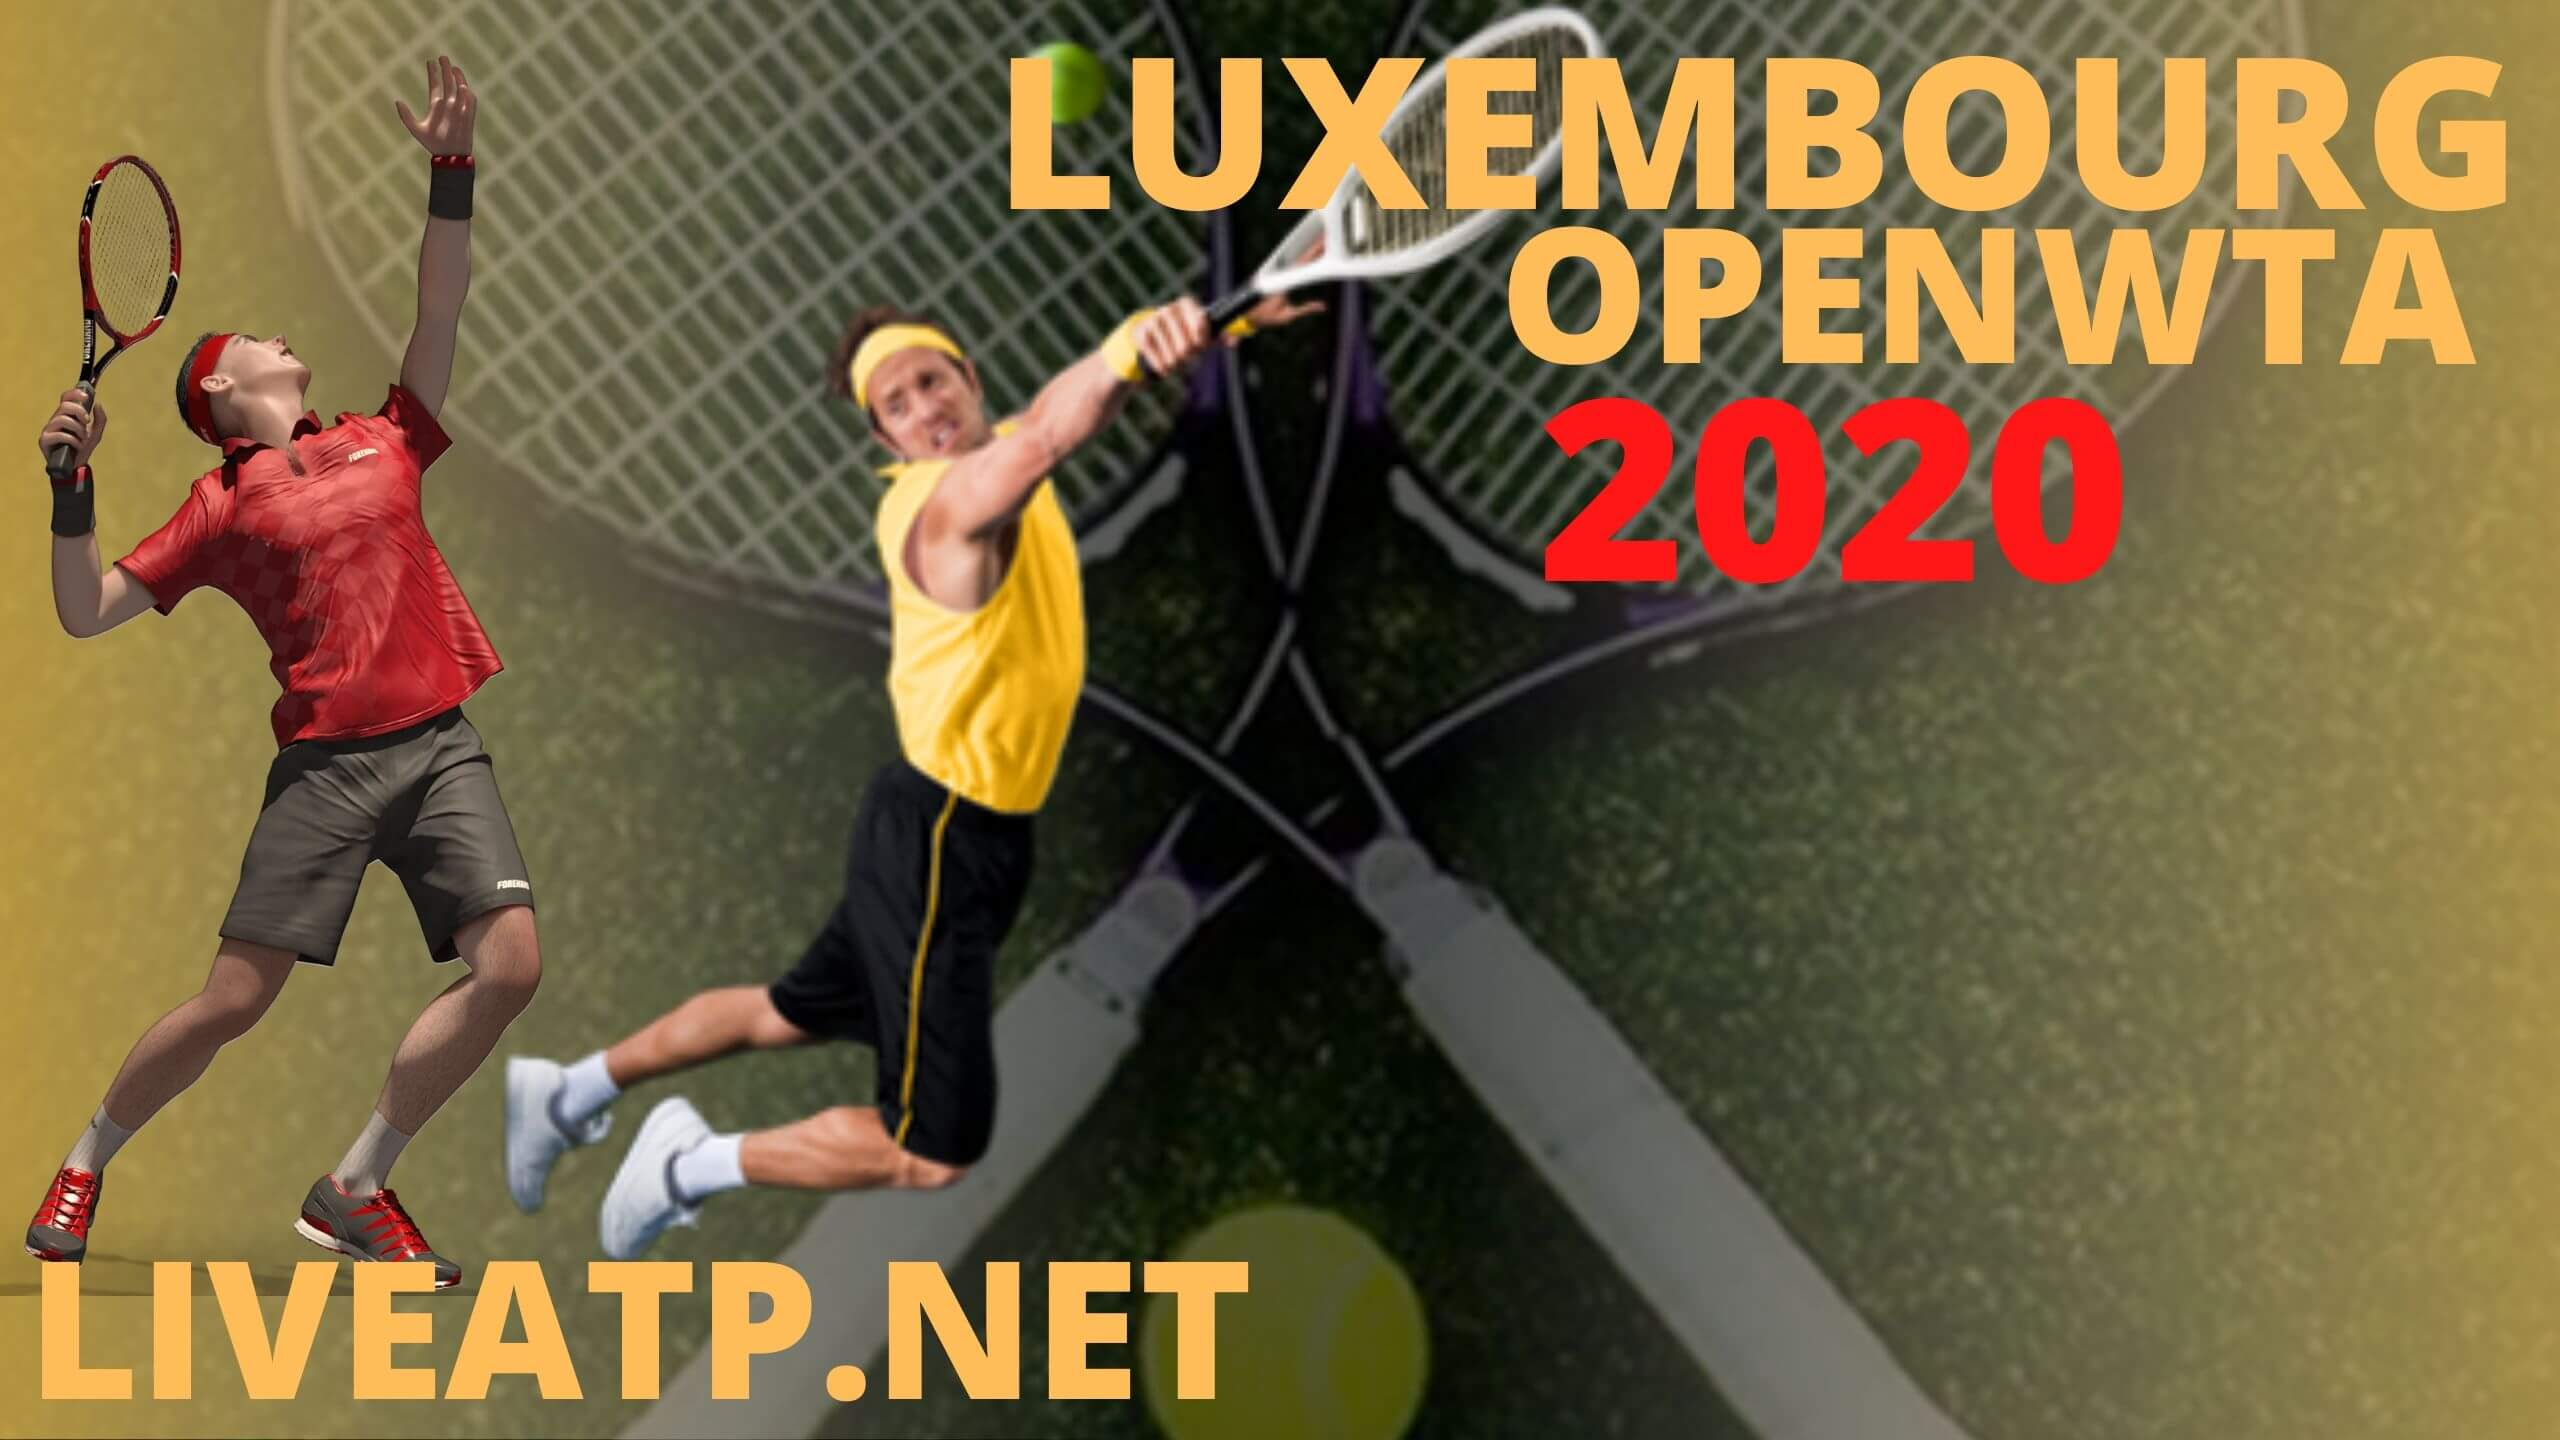 Luxembourg Open Live Stream 2020 | Day 2